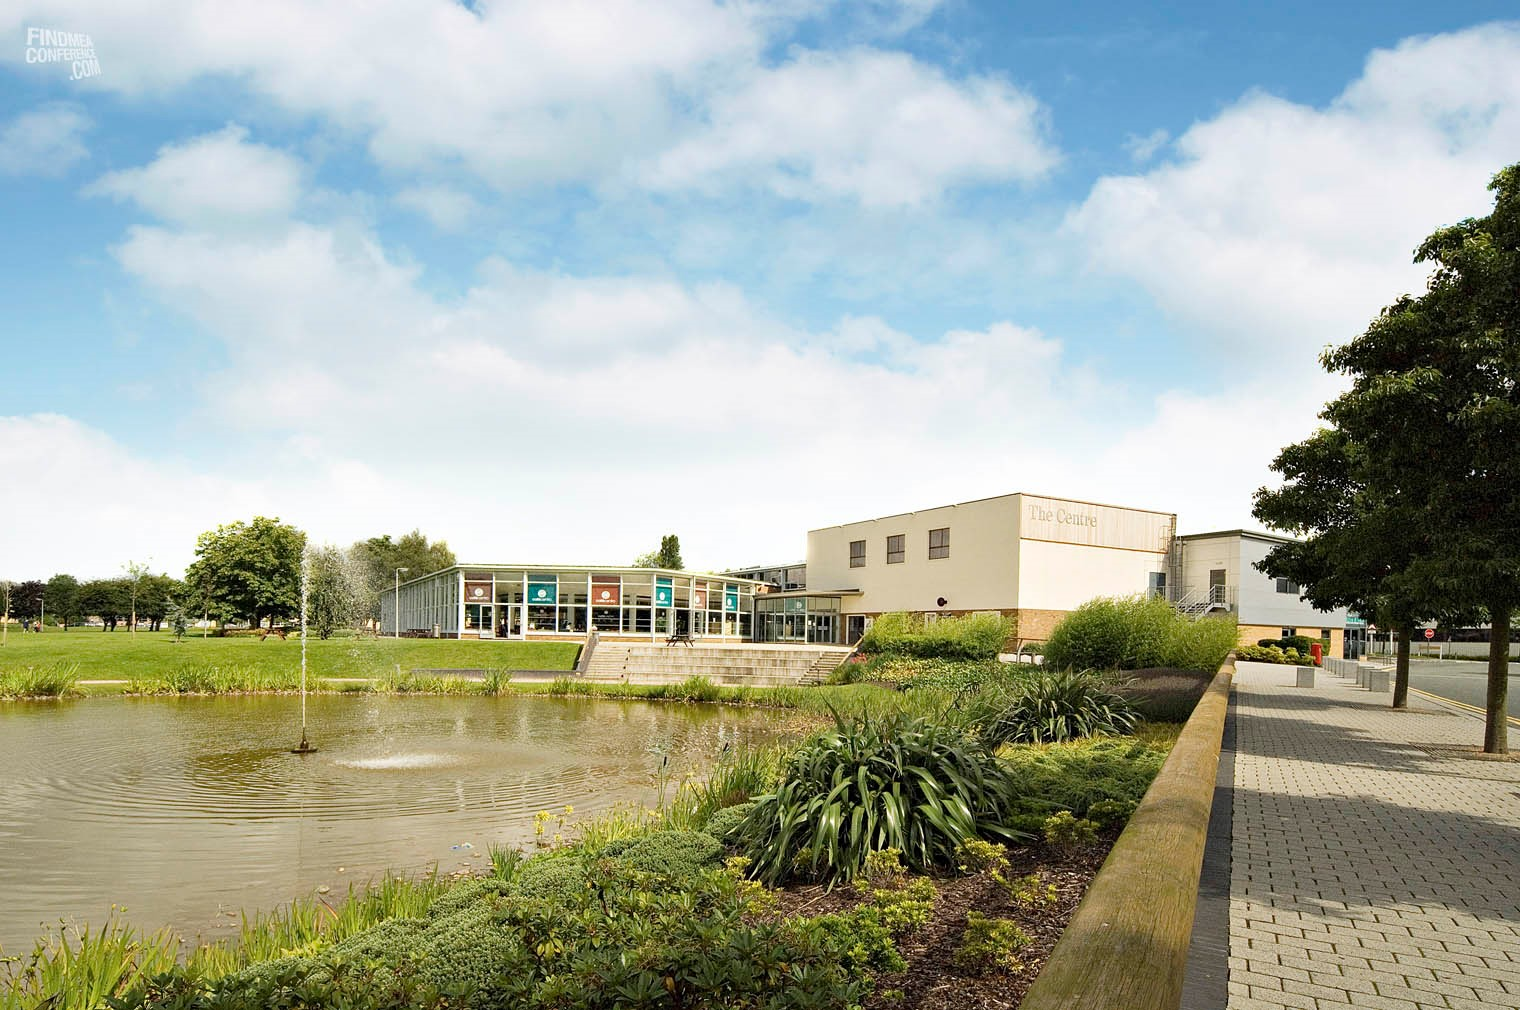 Picture of Birchwood Conference Centre